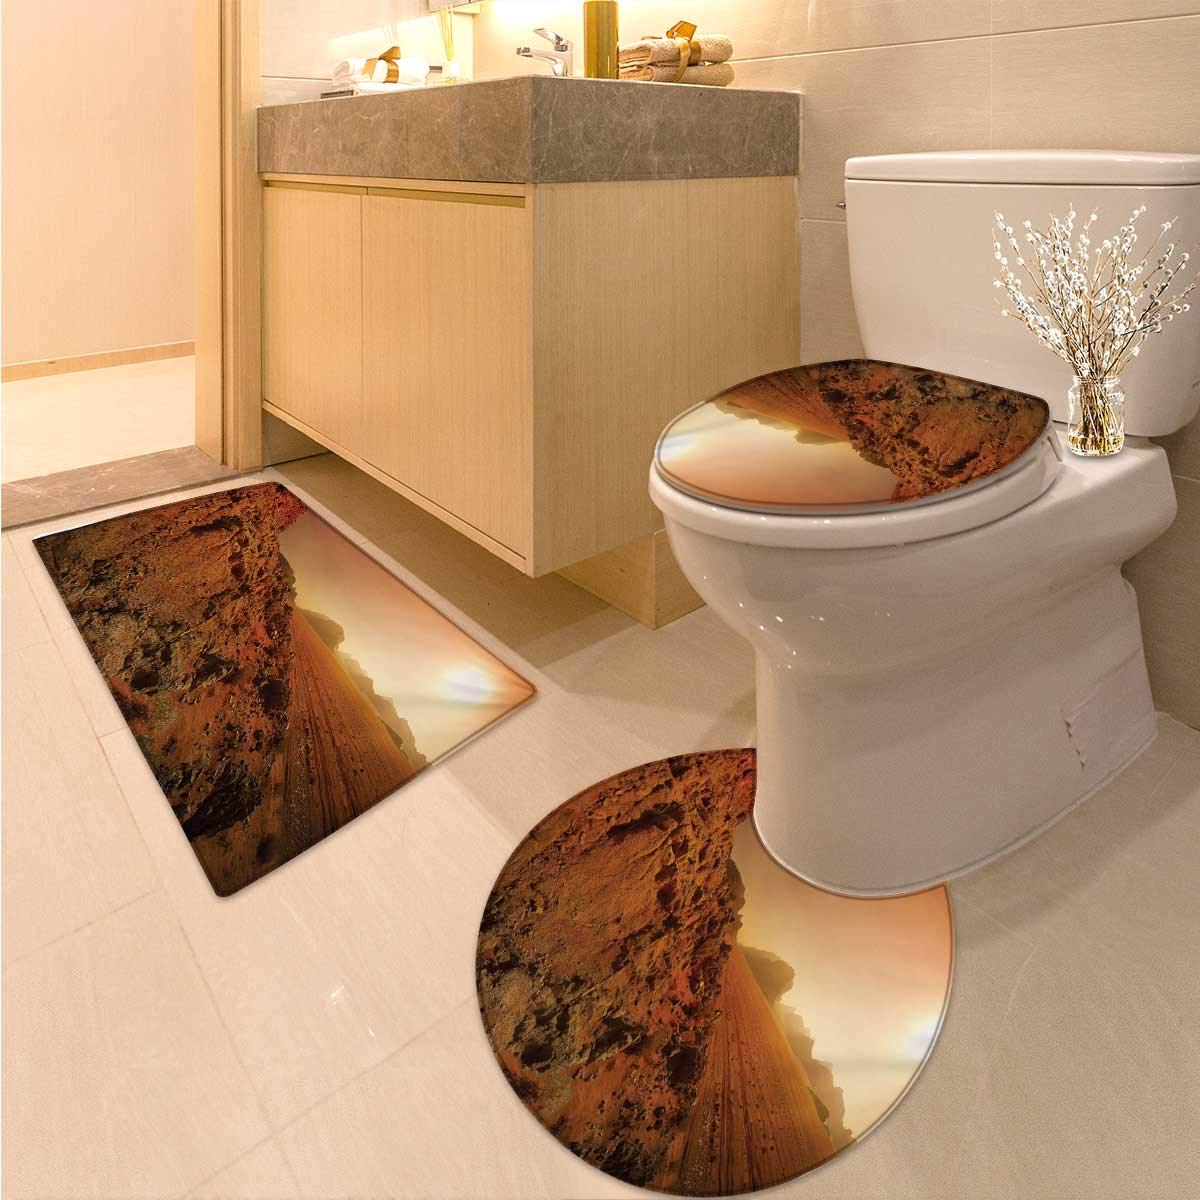 Anhuthree Galaxy Toilet Rug and mat Set Landscape from The Movie Fantastic Fictional Galaxy Clash Pattern Sunset Mountains Non Slip Bath Shower Rug Brown Yellow